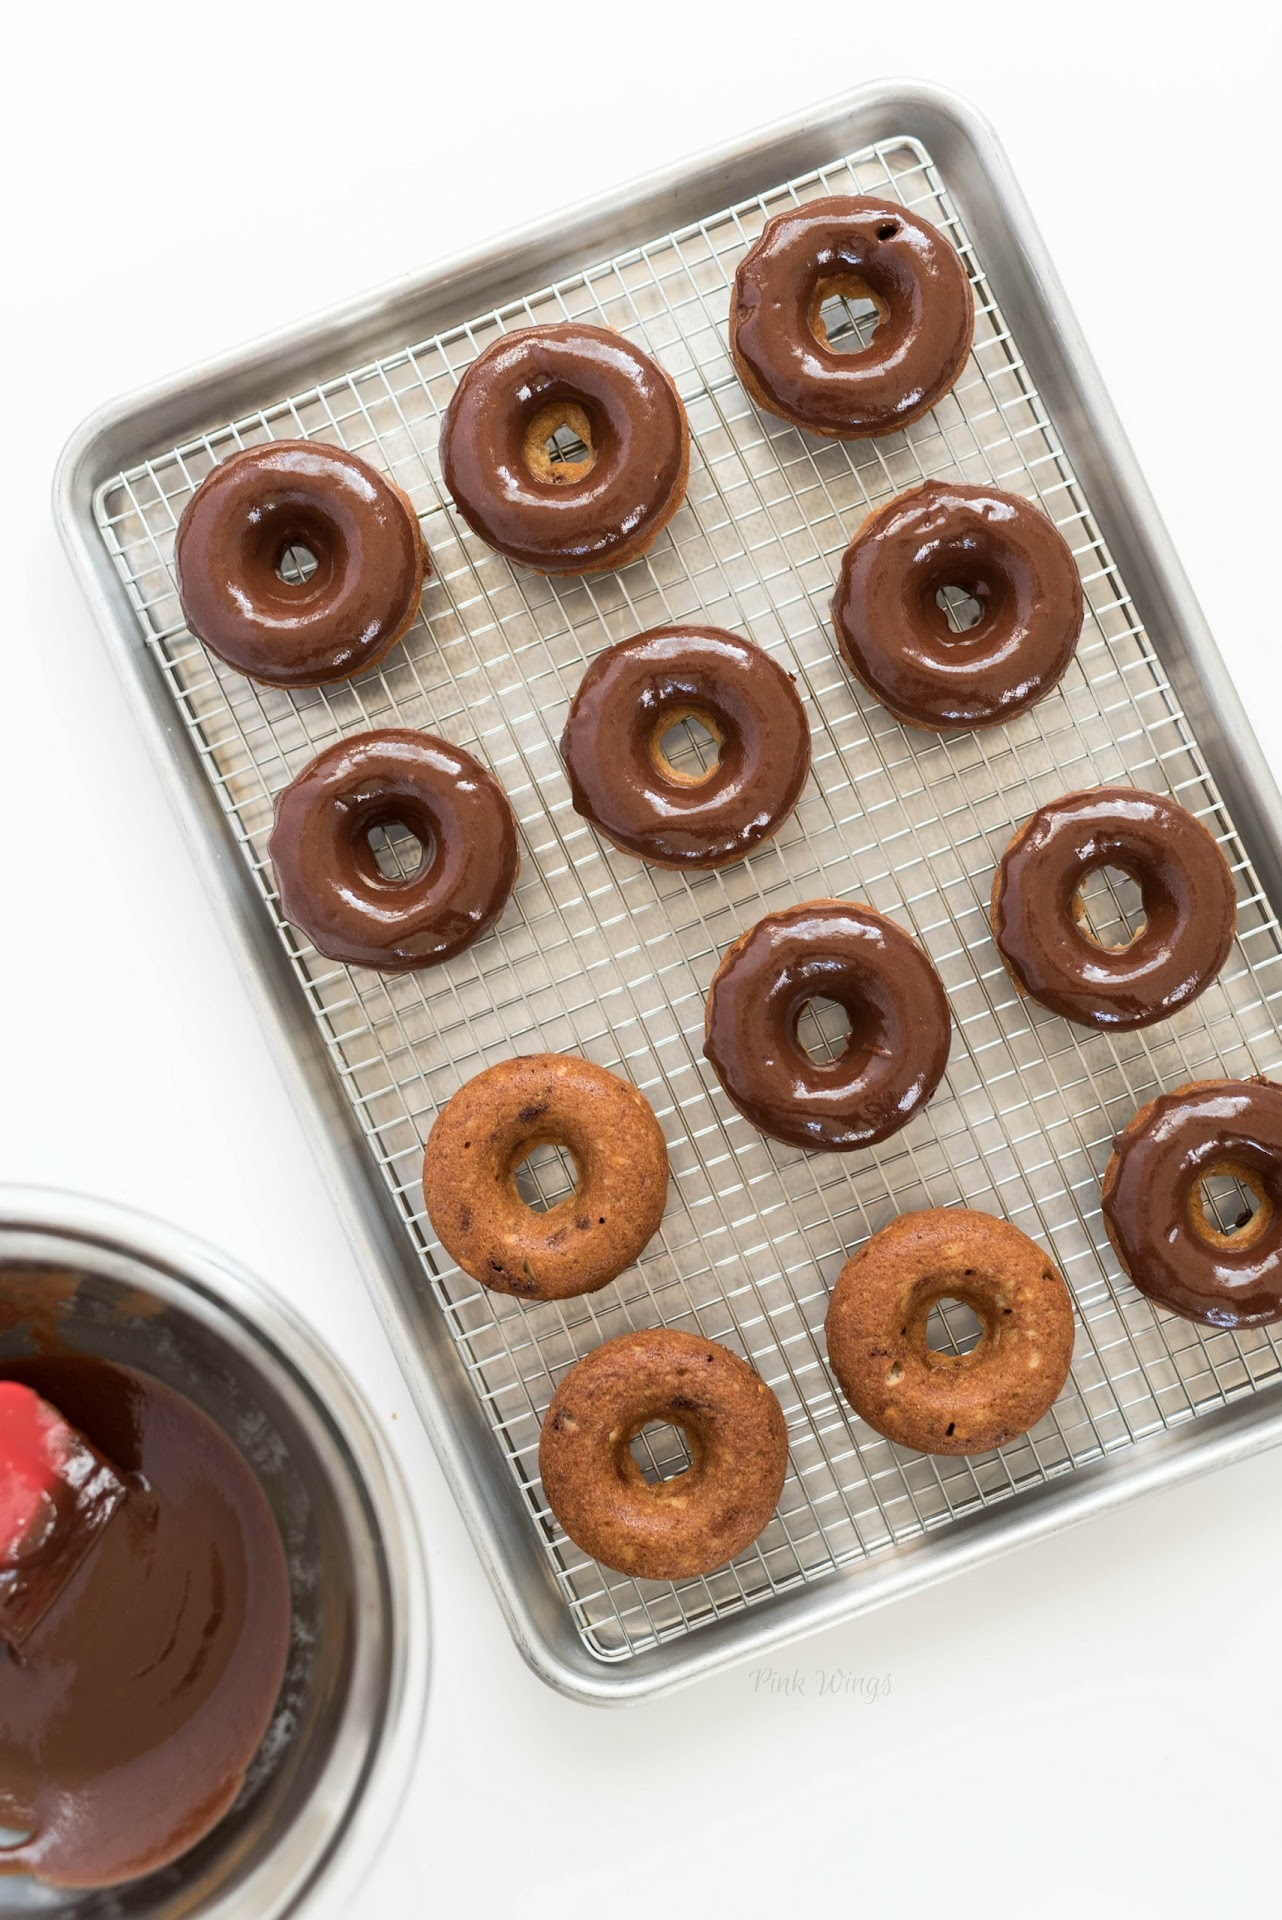 baked donut recipe, chocolate doughnuts, football dessert recipe, football party ideas, football doughnuts, gold doughnuts, gold desserts, gold party ideas, banana dessert, tailgating, unique football food, recipe food prep photography, chocolate glaze recipe, glaze for donuts, doughnut frosting icing